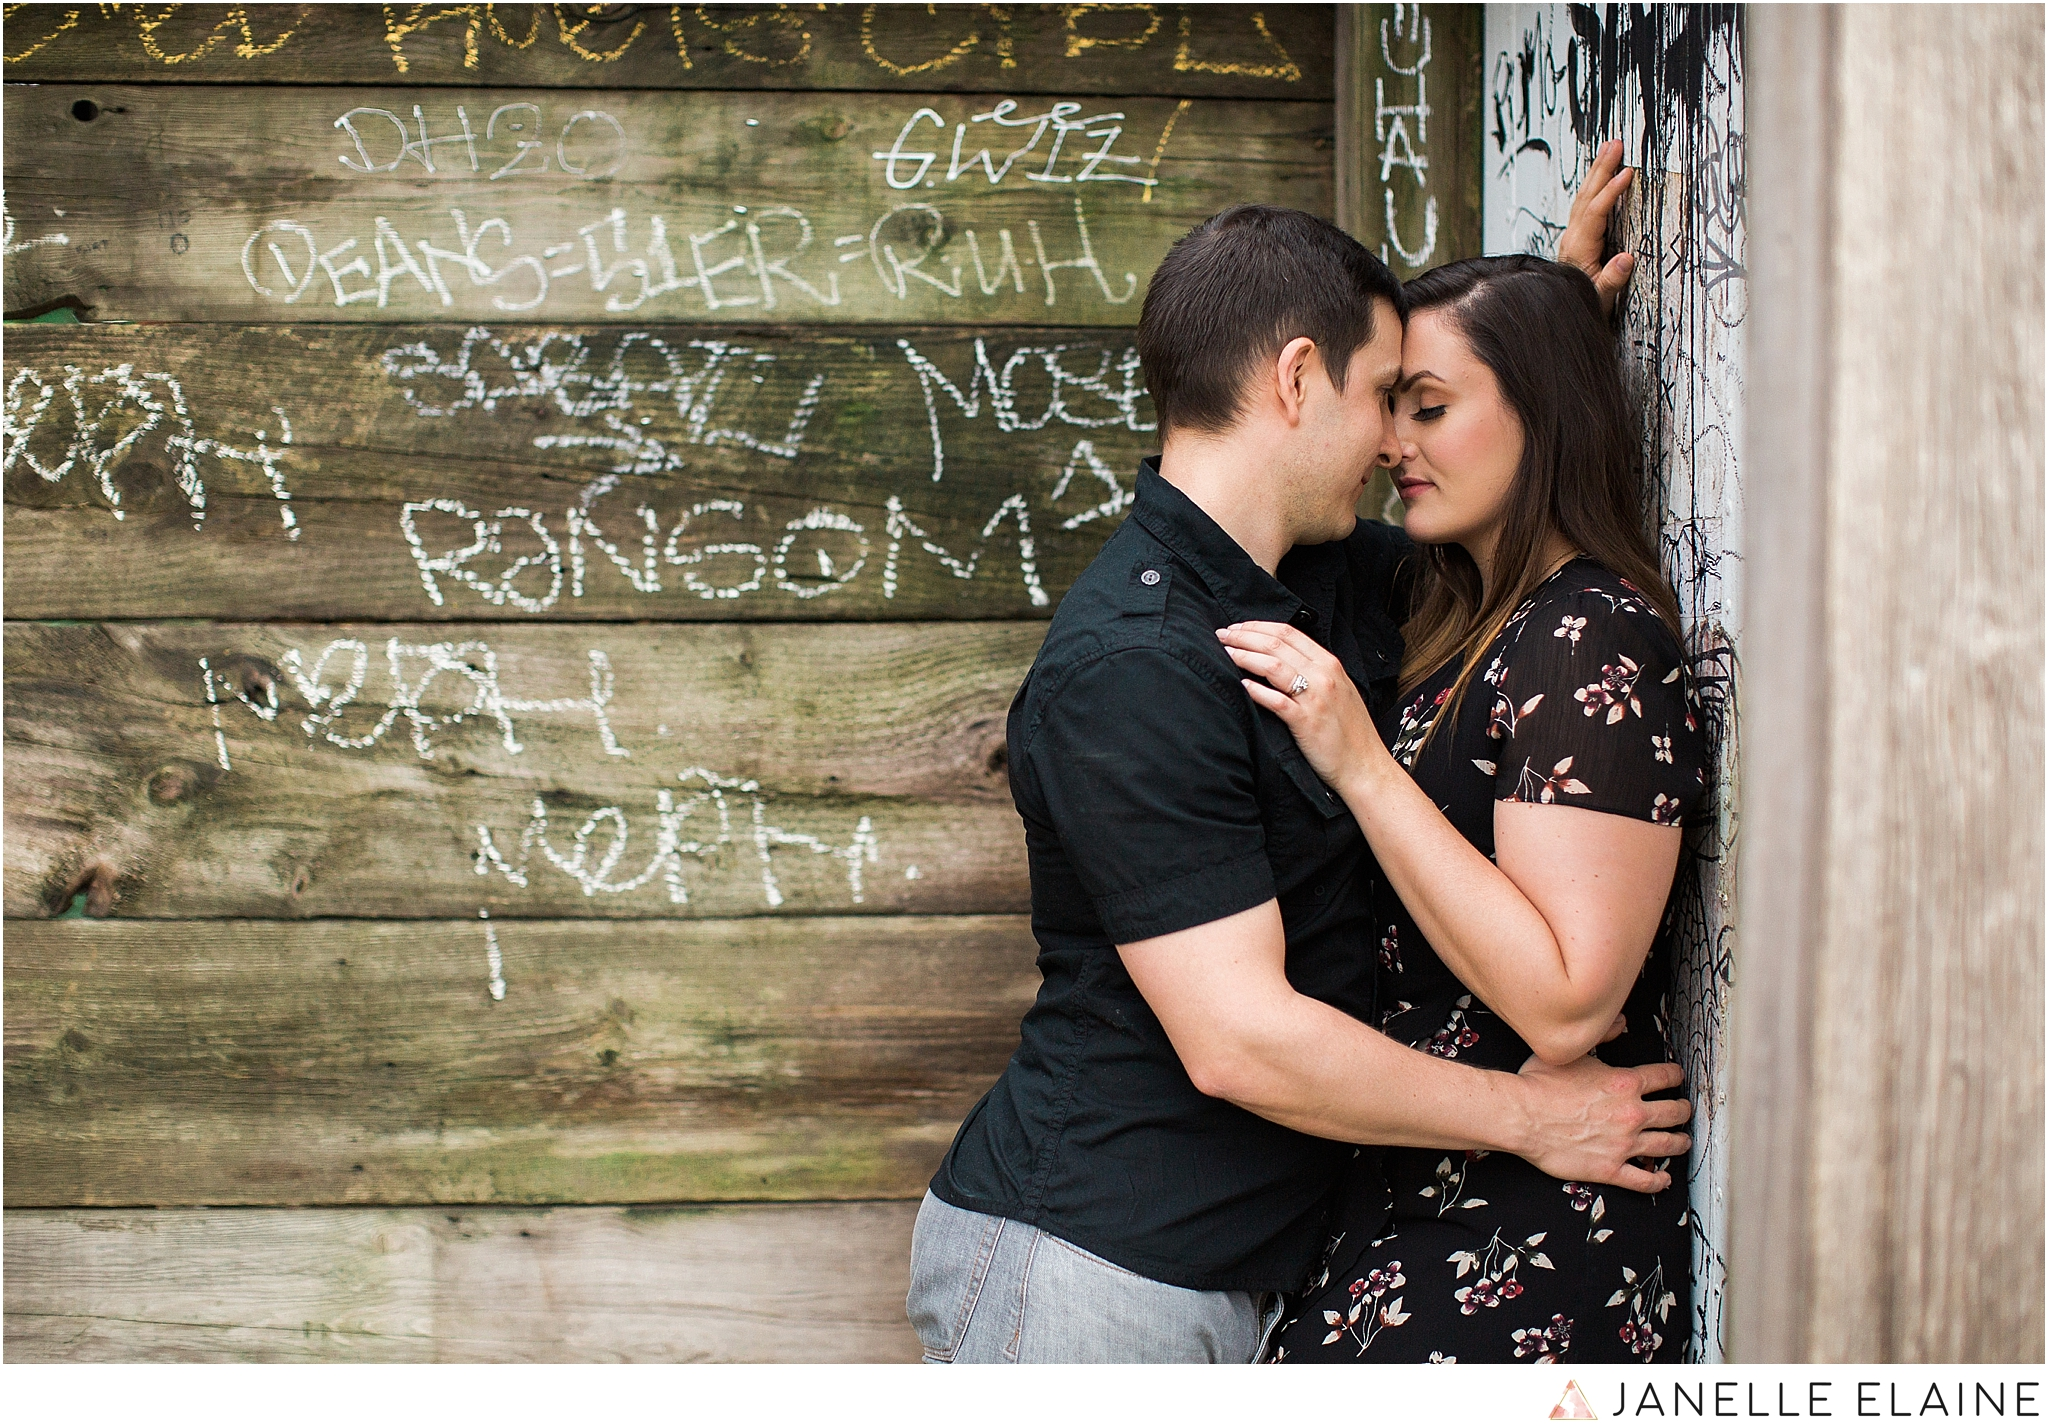 karen ethan-georgetown engagement photos-seattle-janelle elaine photography-40.jpg